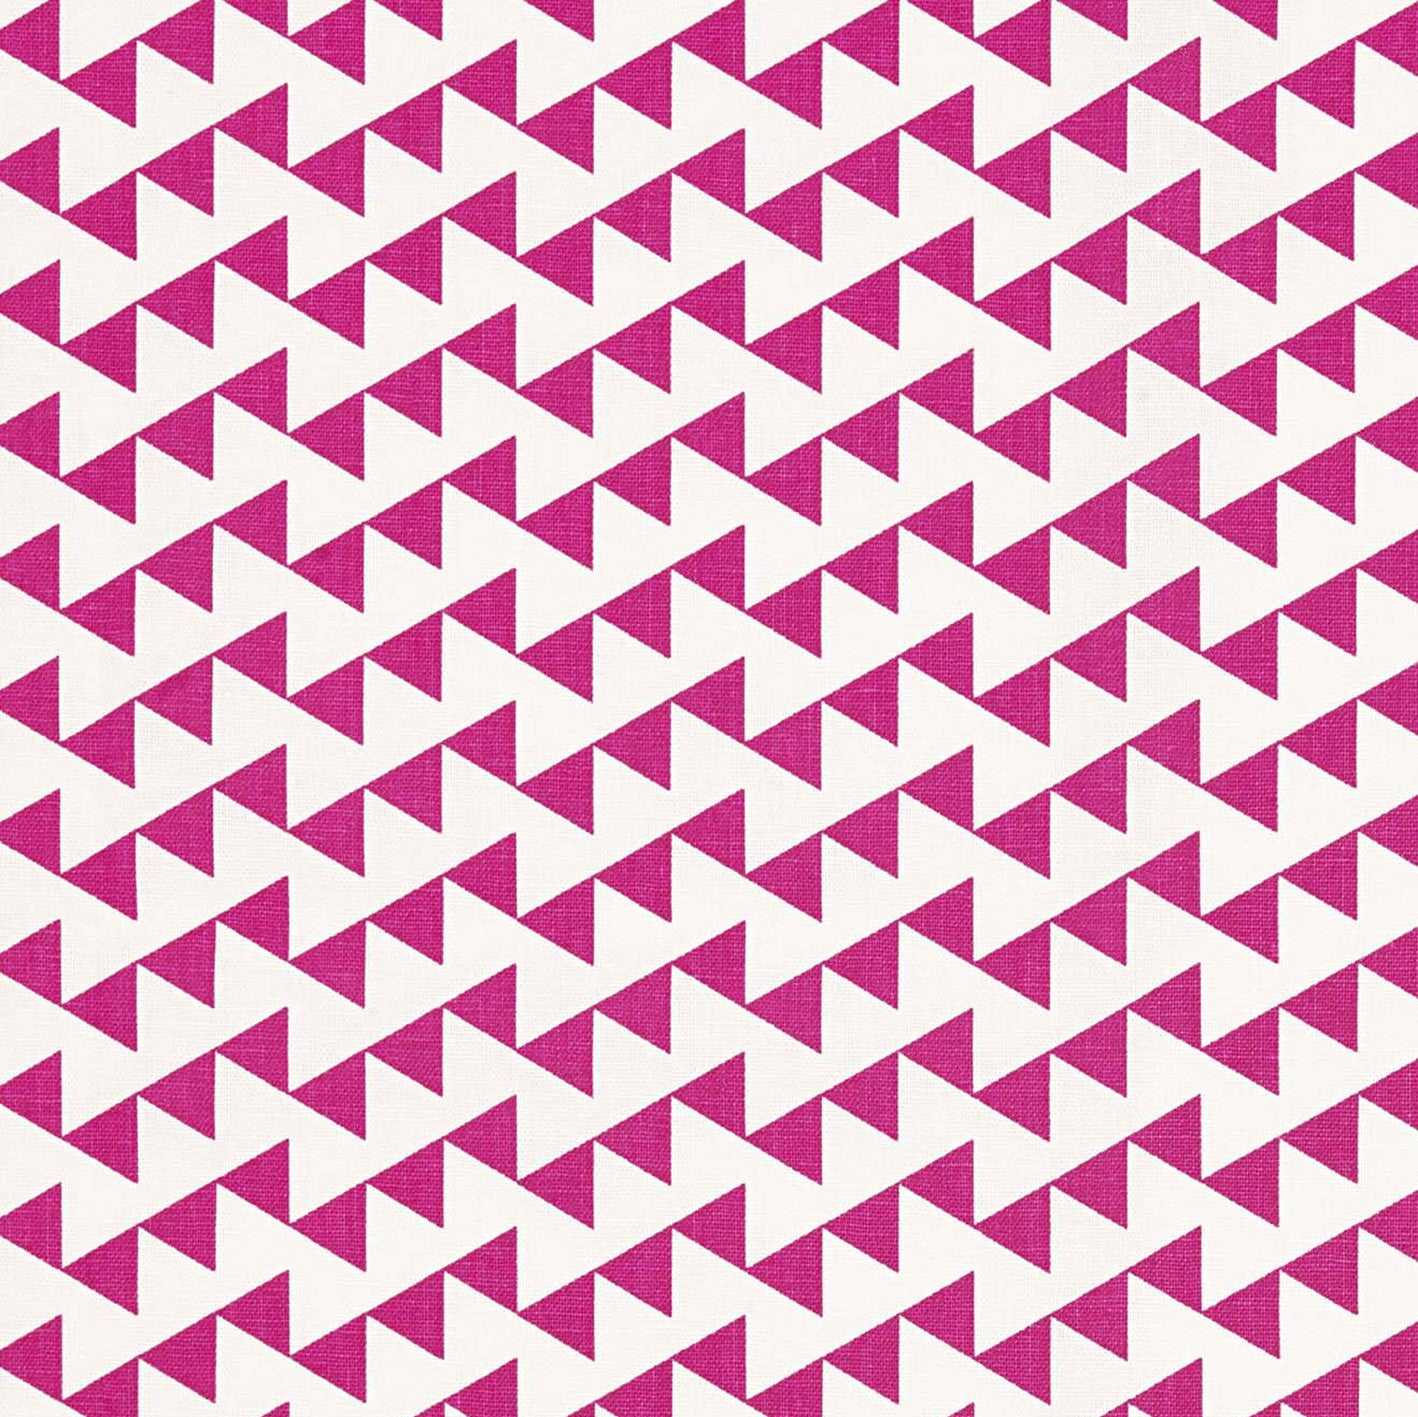 Bunting Geometric Pattern Cotton Linen Fabric Bright Fuchsia Pink